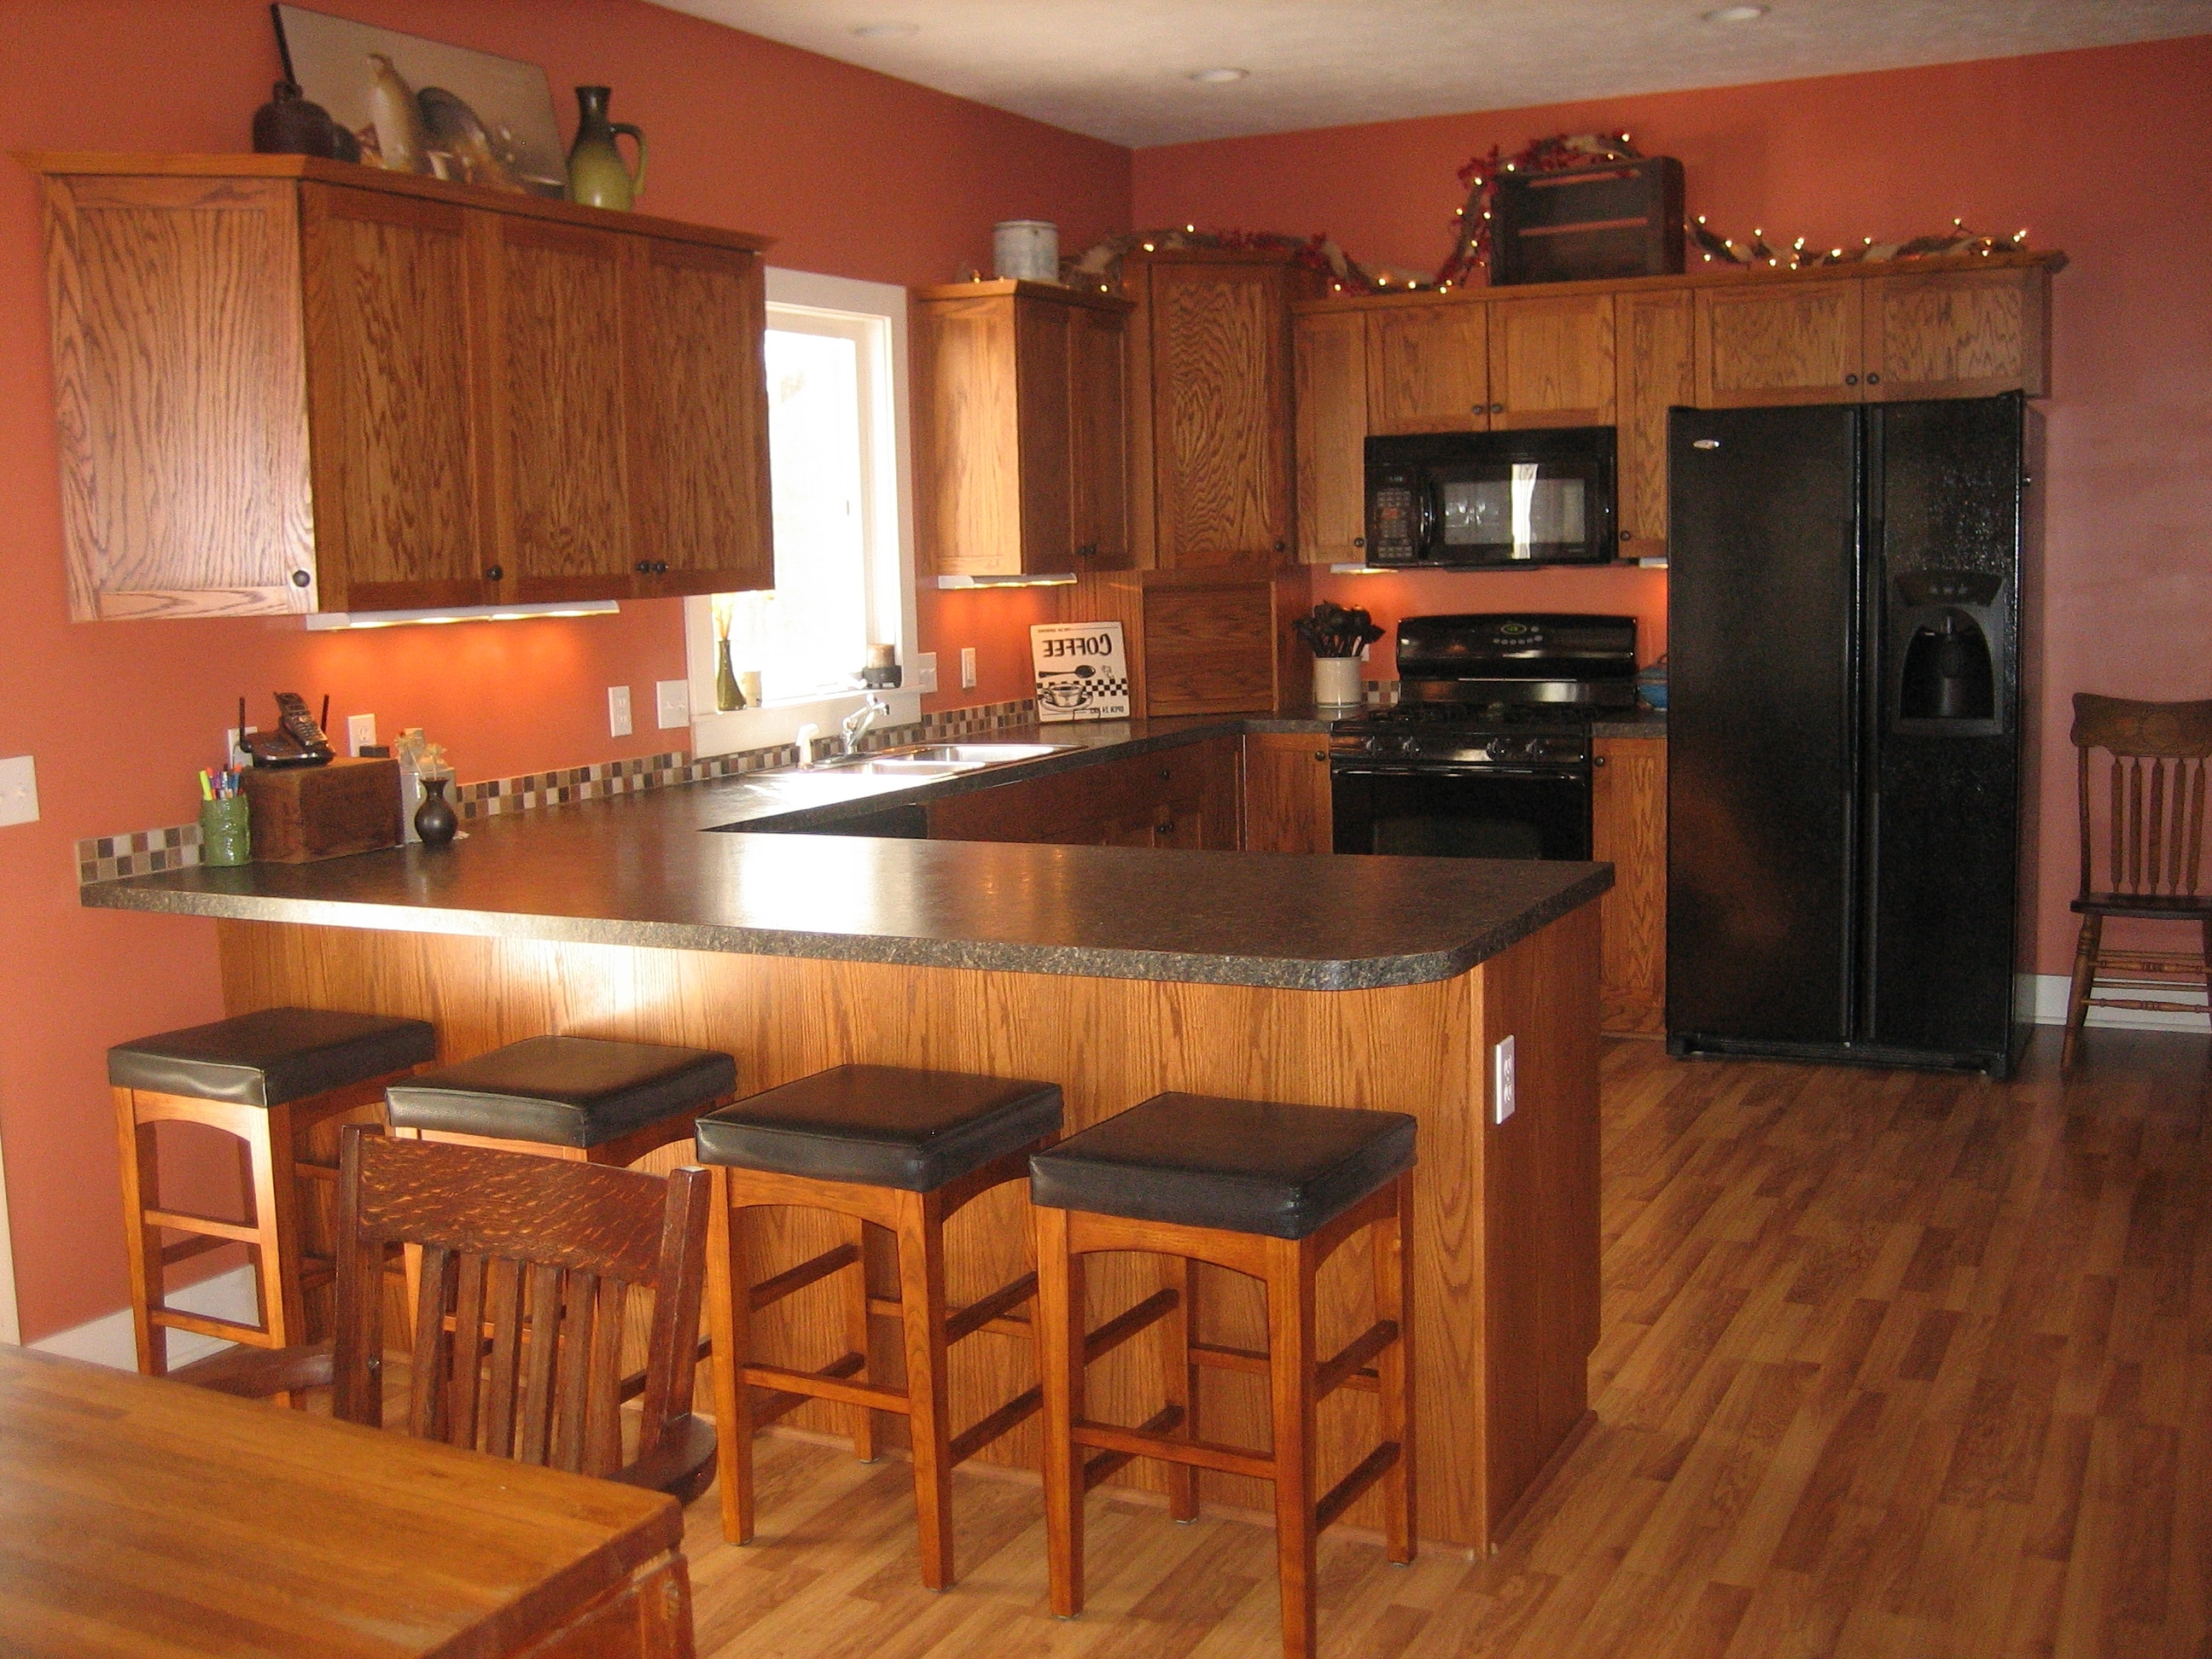 2017 My Kitchen With Mission Style Oak Cupboards And Terra Cotta Orange Intended For Oak Cupboards (View 1 of 15)